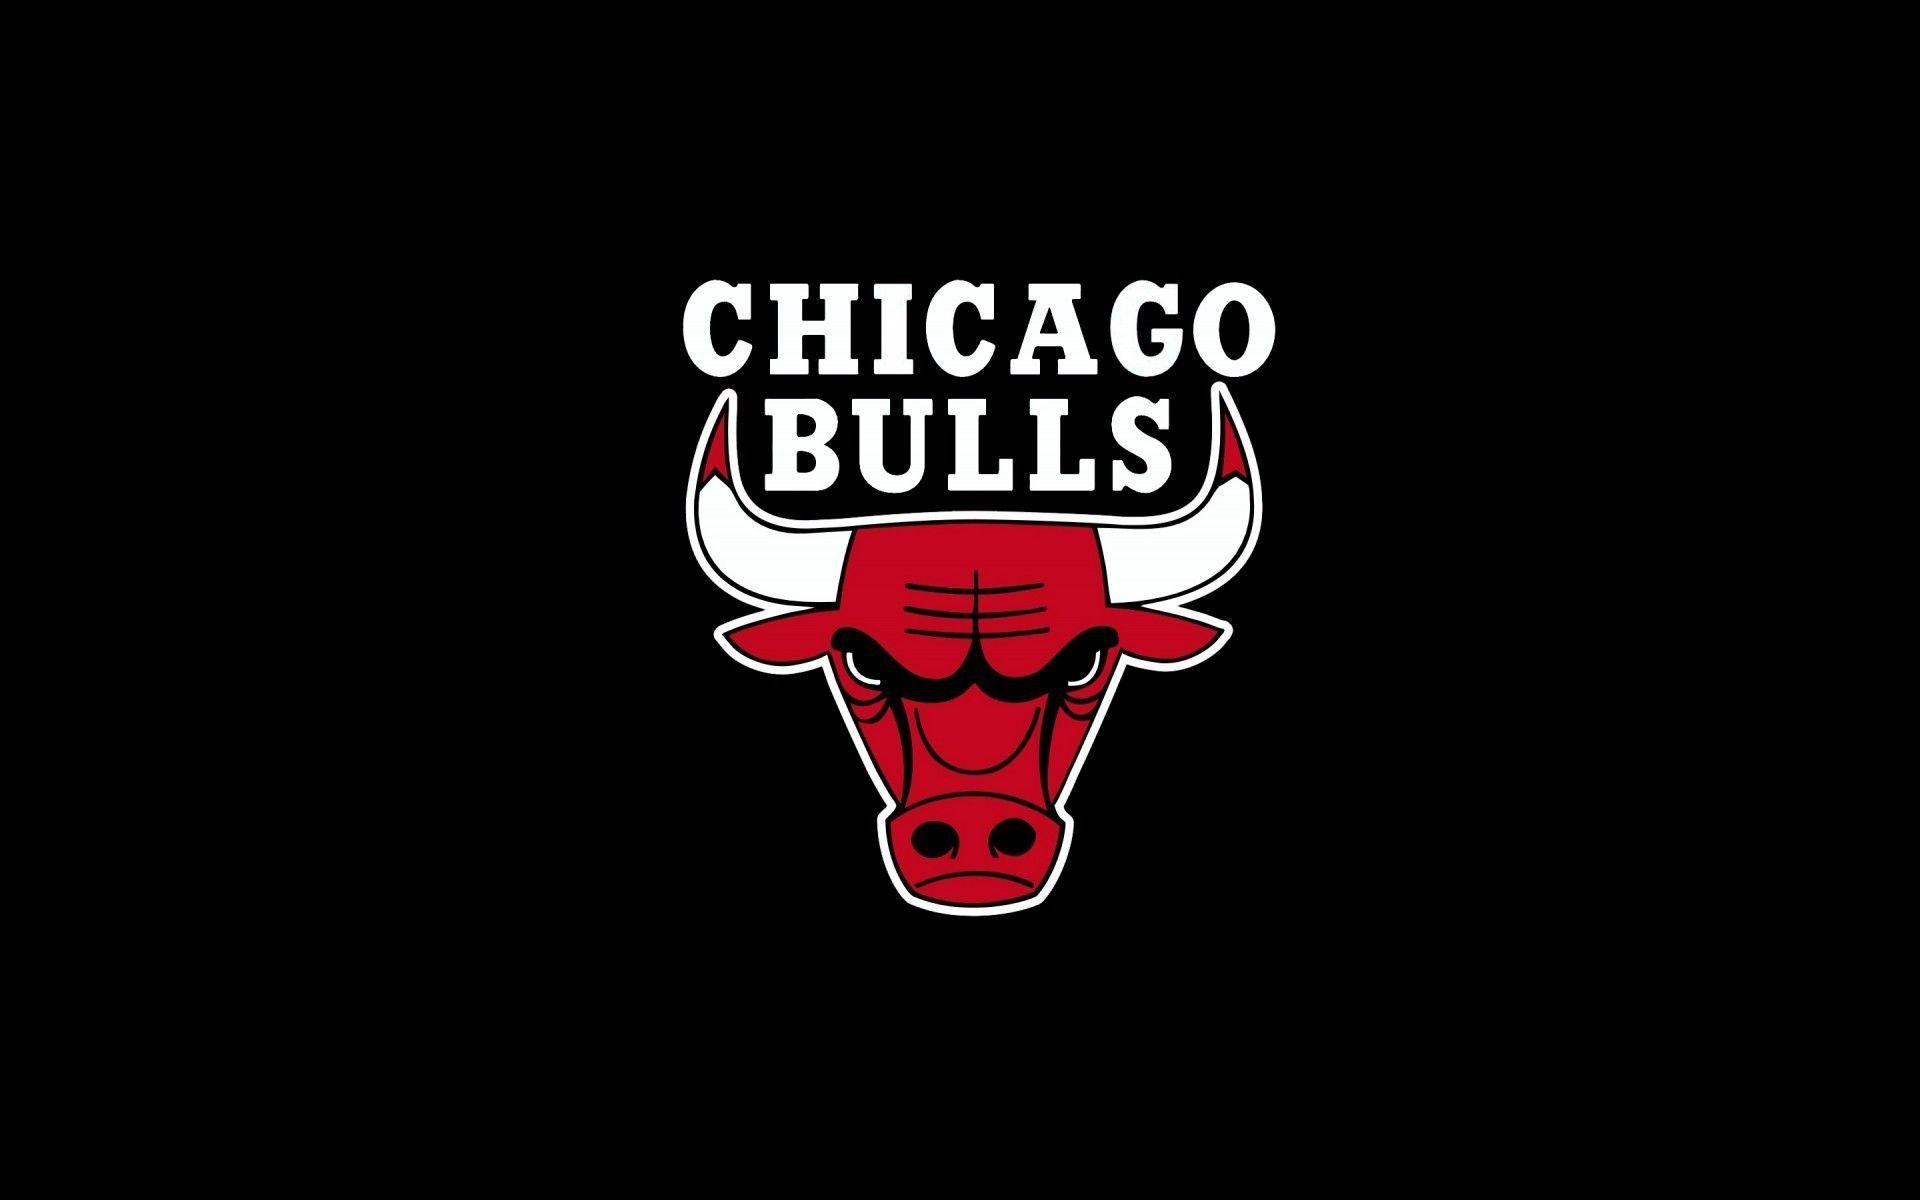 Chicago bulls wallpapers 1920x1200 chicago bulls wallpapers full hd wallpaper search voltagebd Images